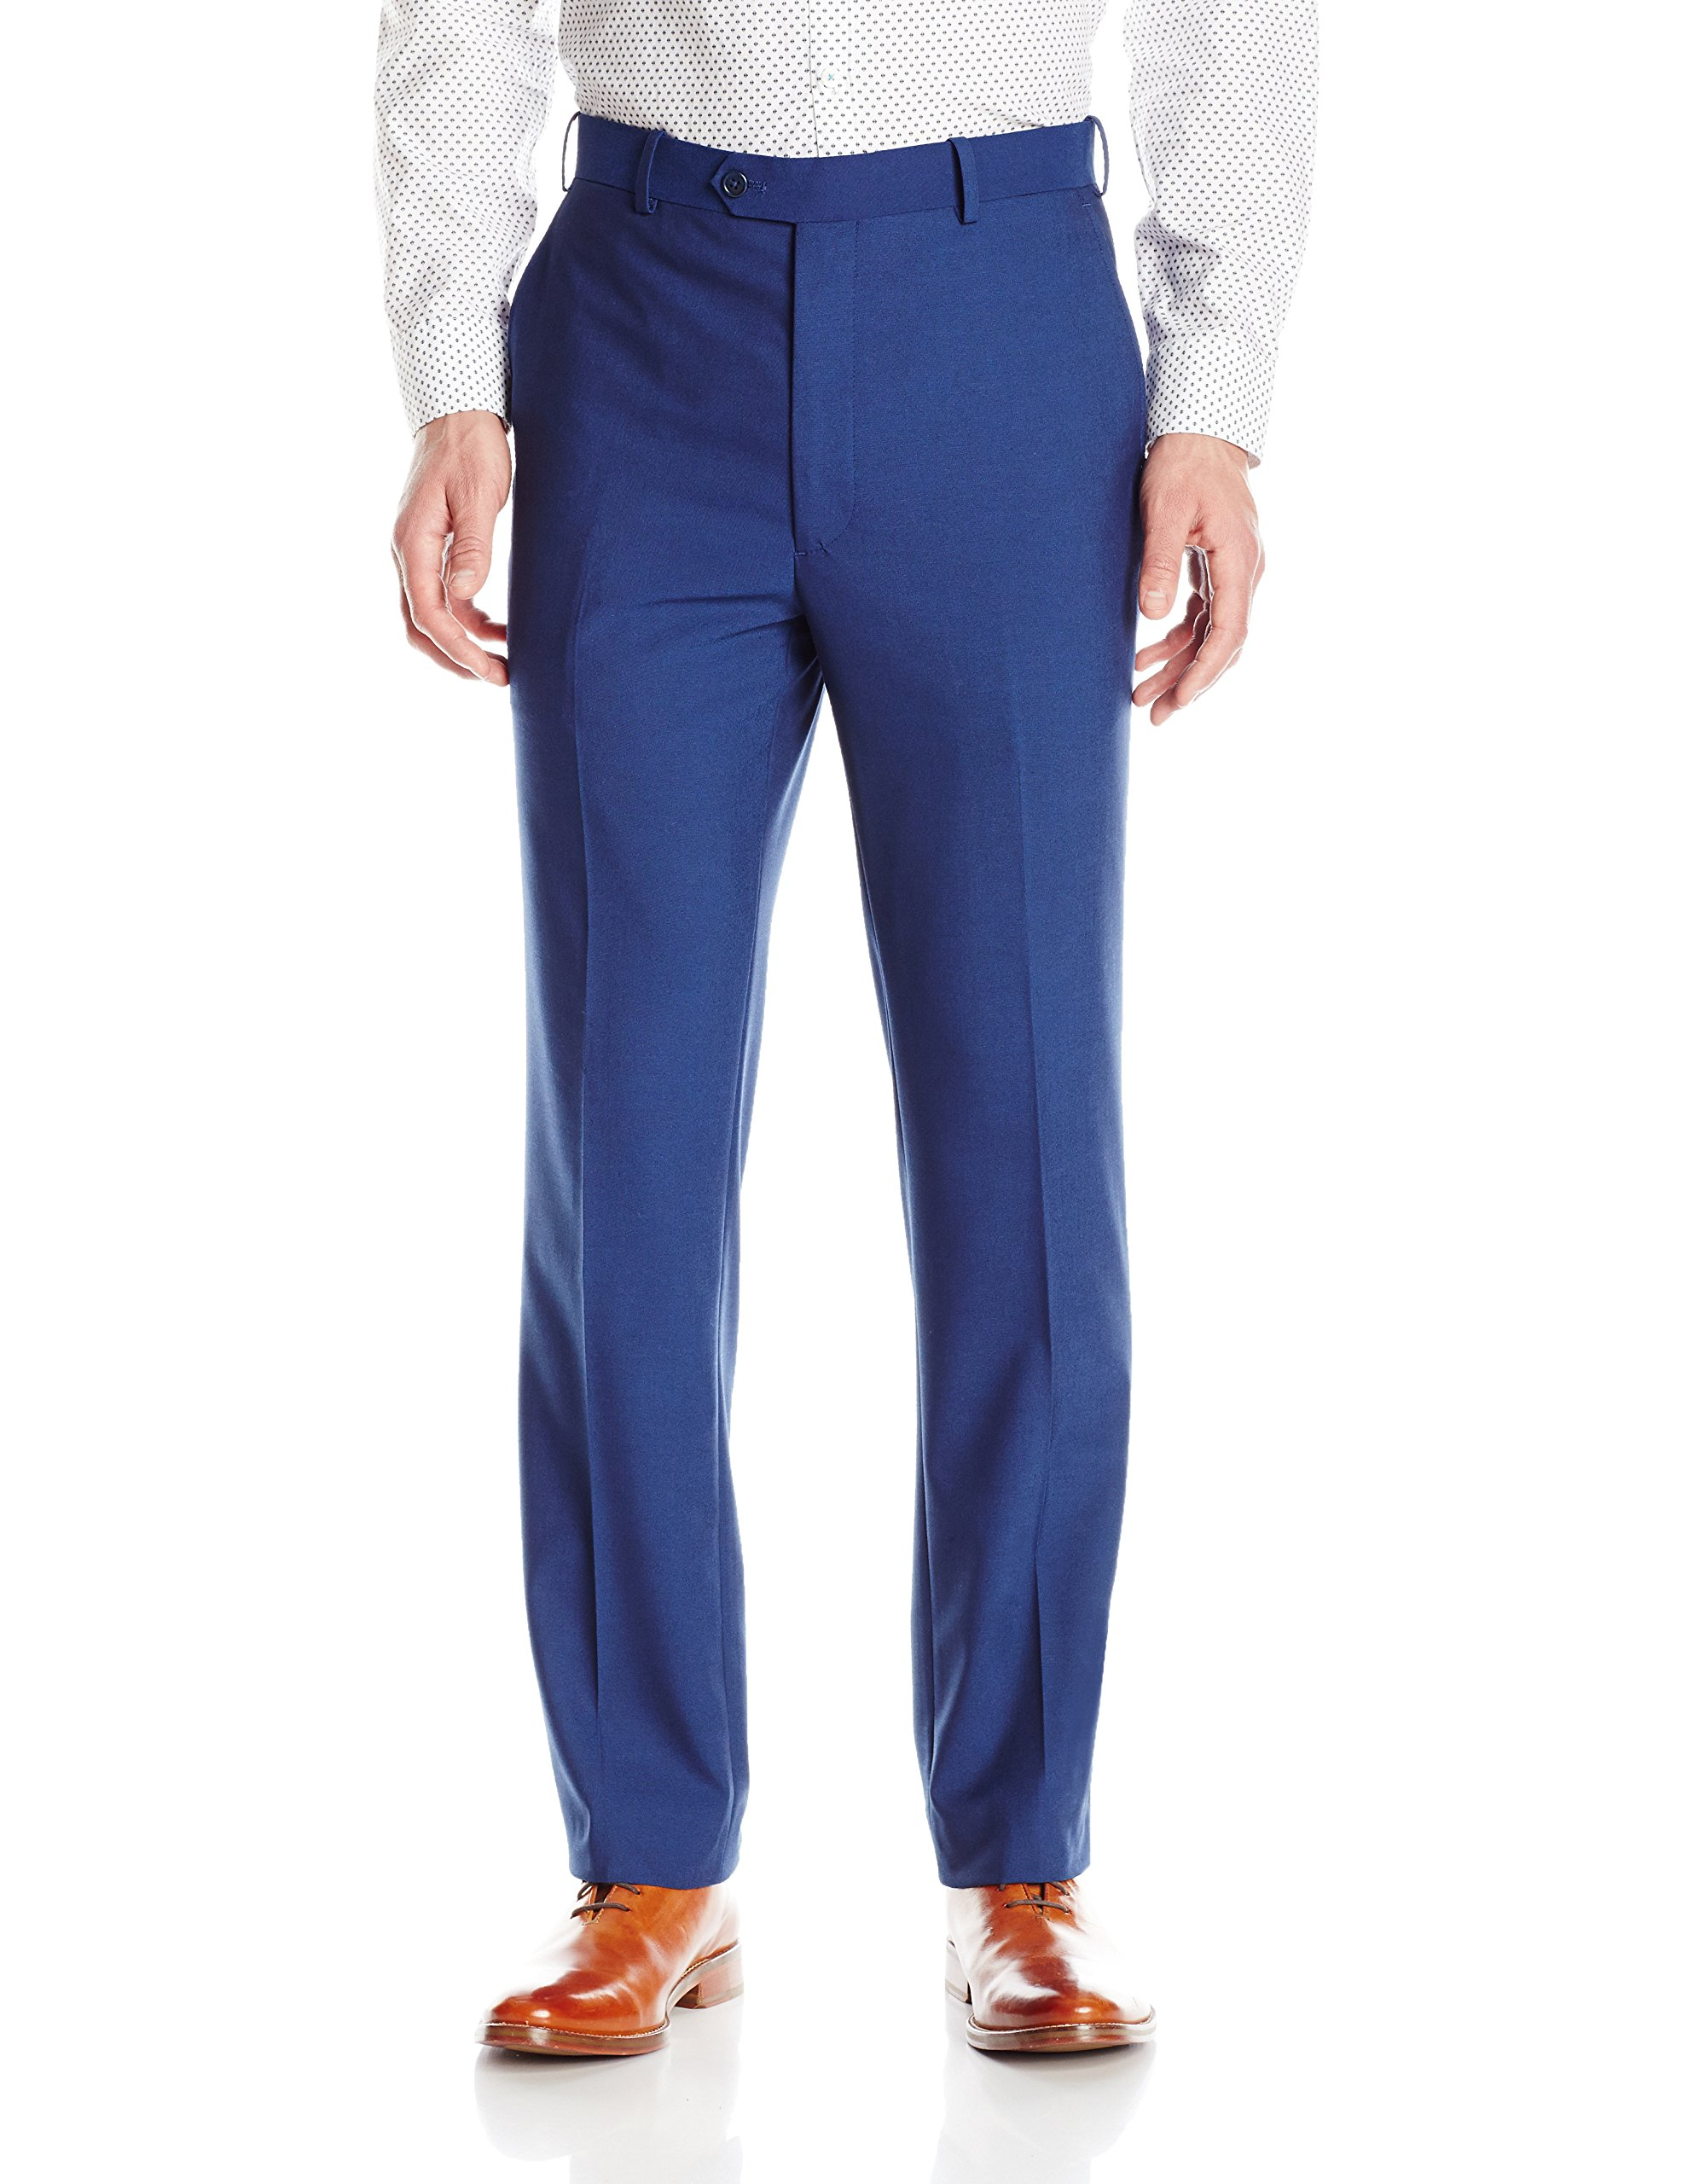 Adolfo Men's Micro Tech Slim Fit Flat Front Suit Pant, Blue with Lycra Stretch, 34Wx30L by Adolfo